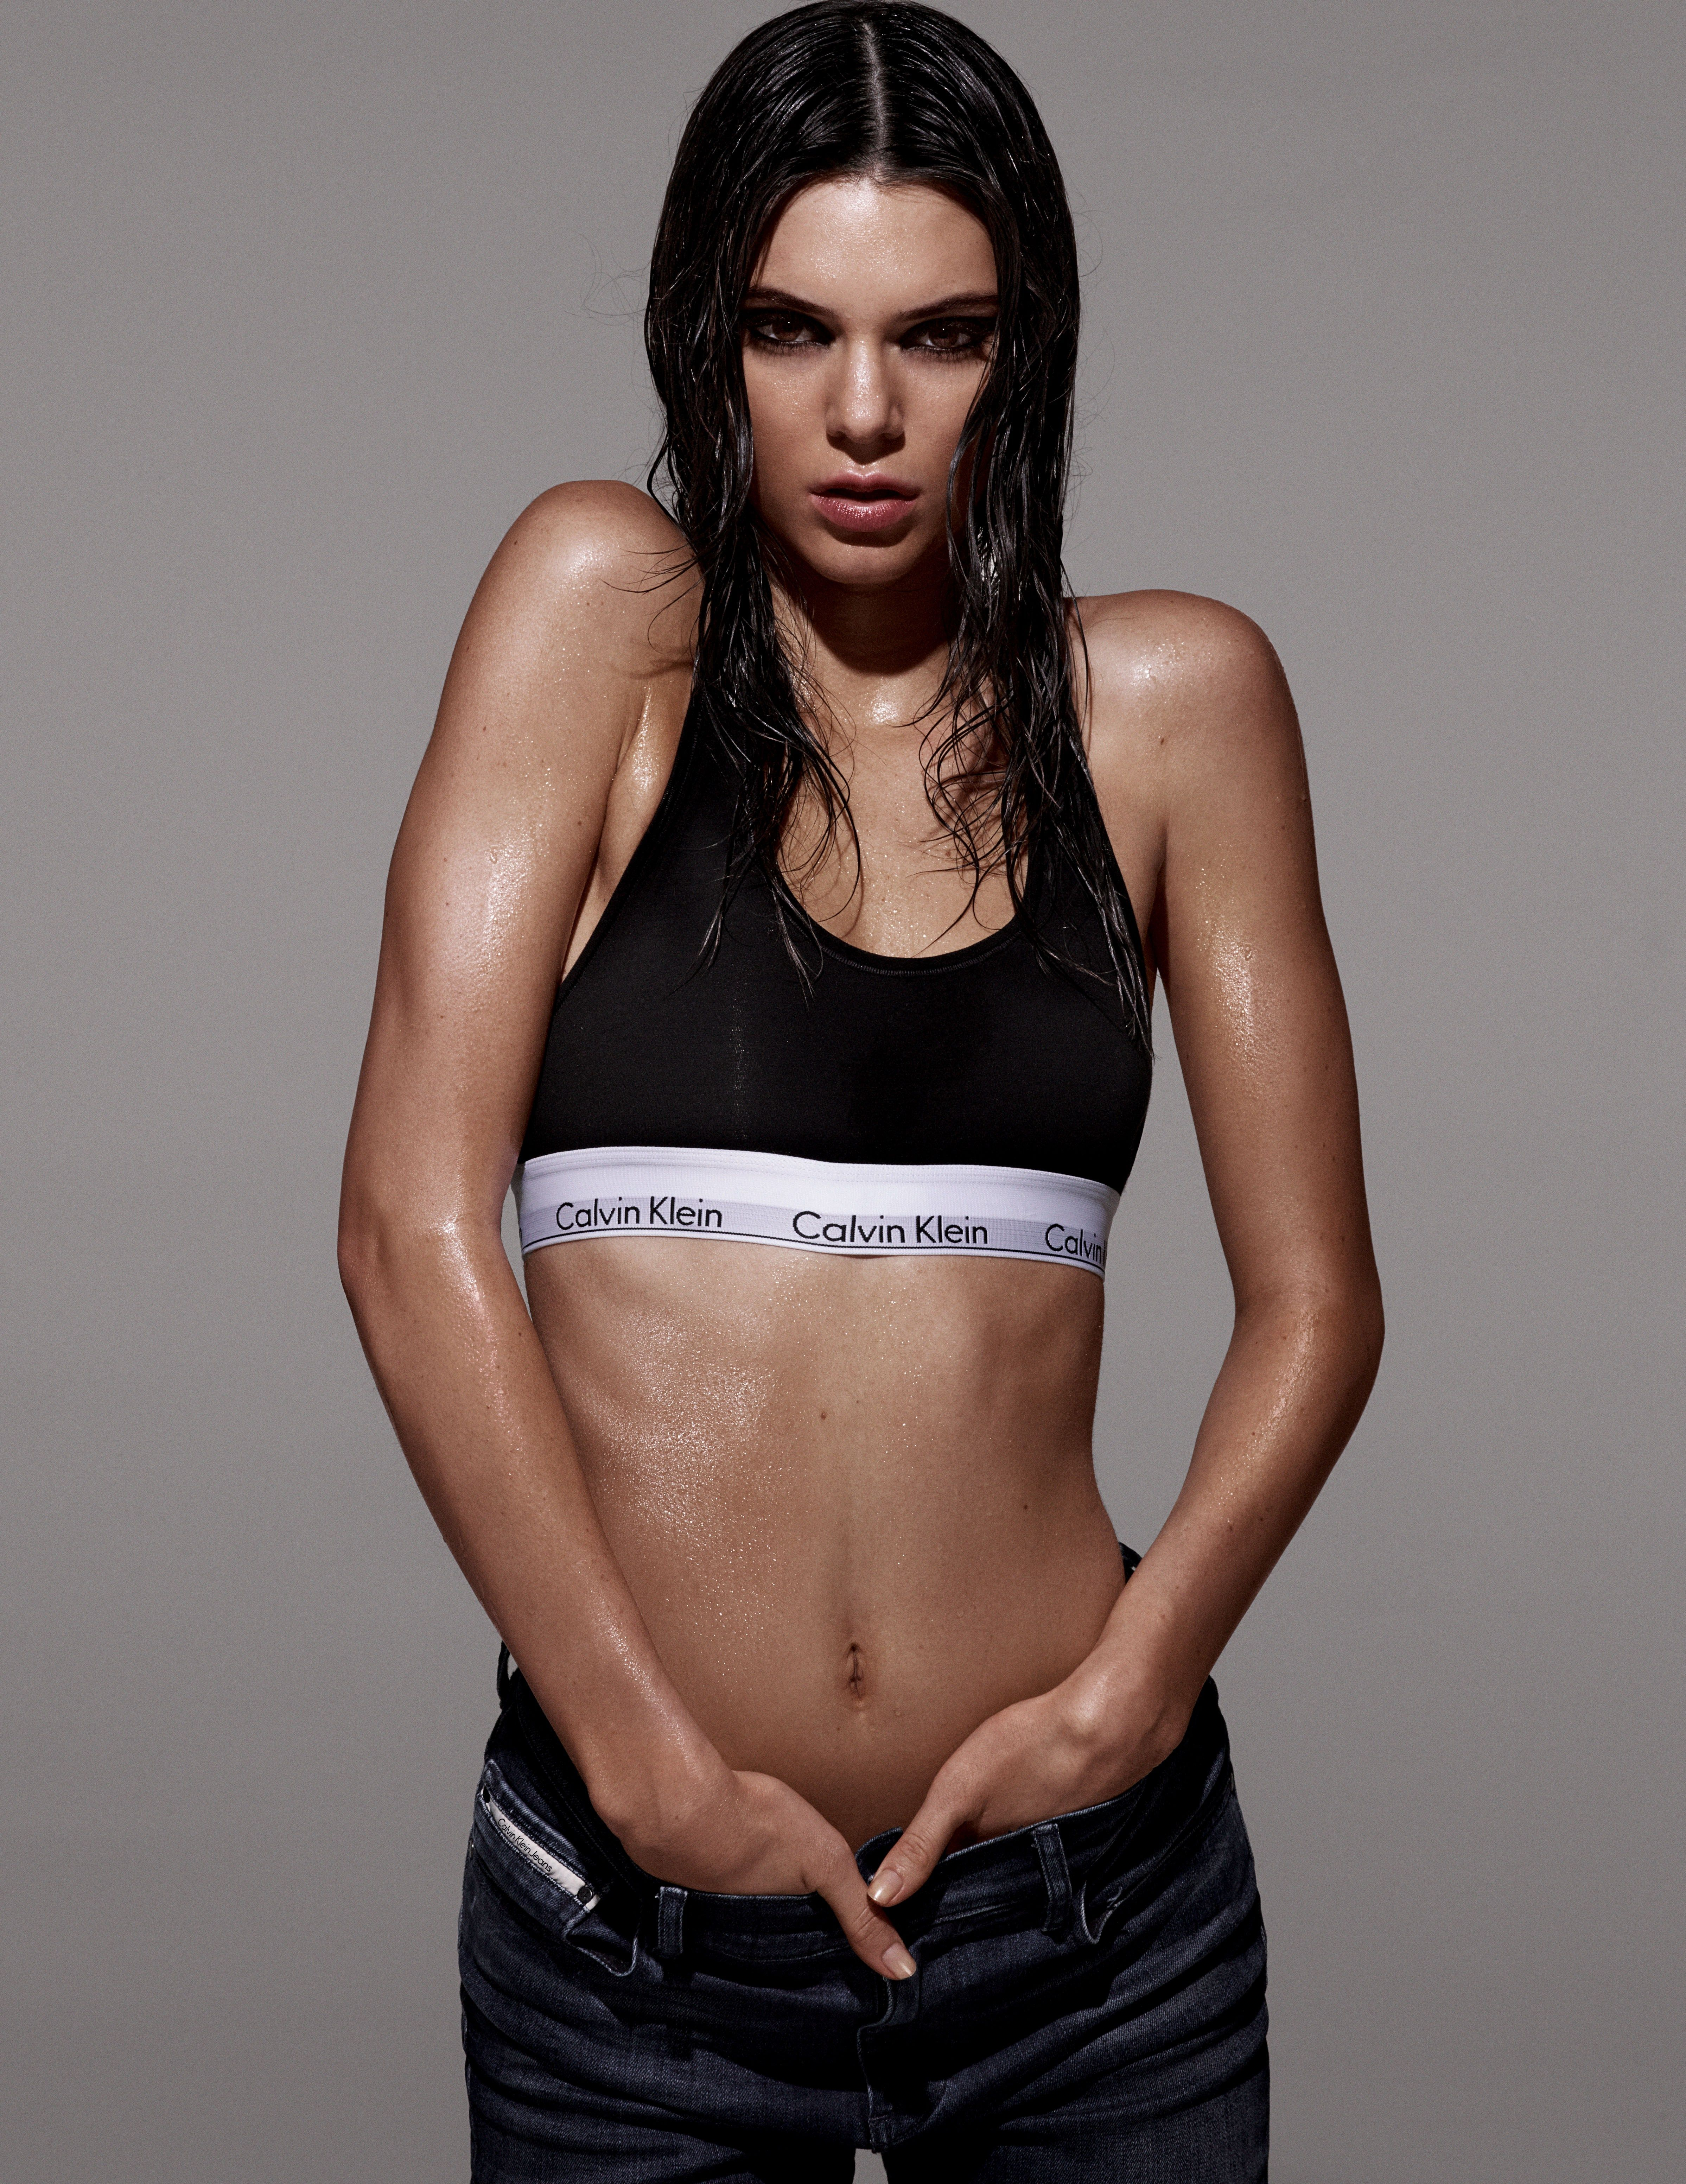 Kendall-Jenner-Sexy-4